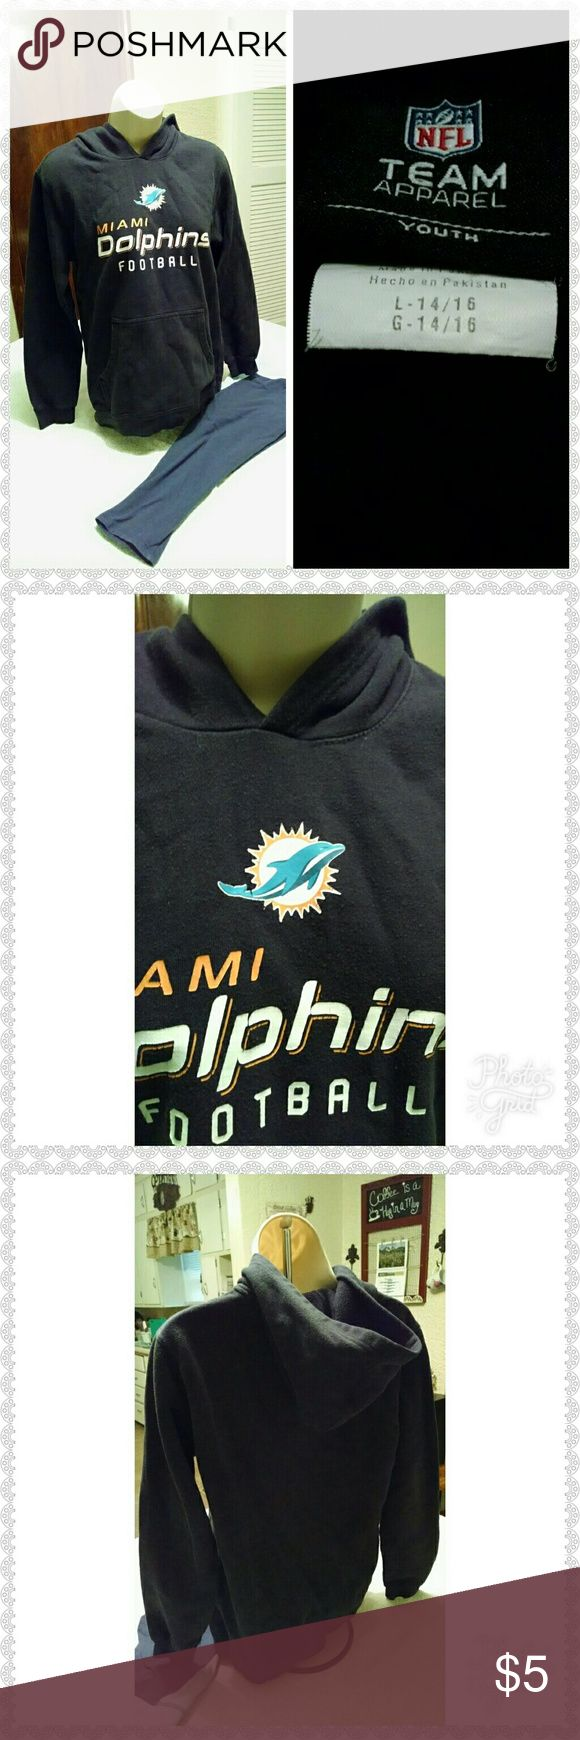 Miami Dolphins hoodie Youth large Miami dolphins hoodie will keep your child warm on those cold winter nights or days. nfl Shirts & Tops Sweatshirts & Hoodies